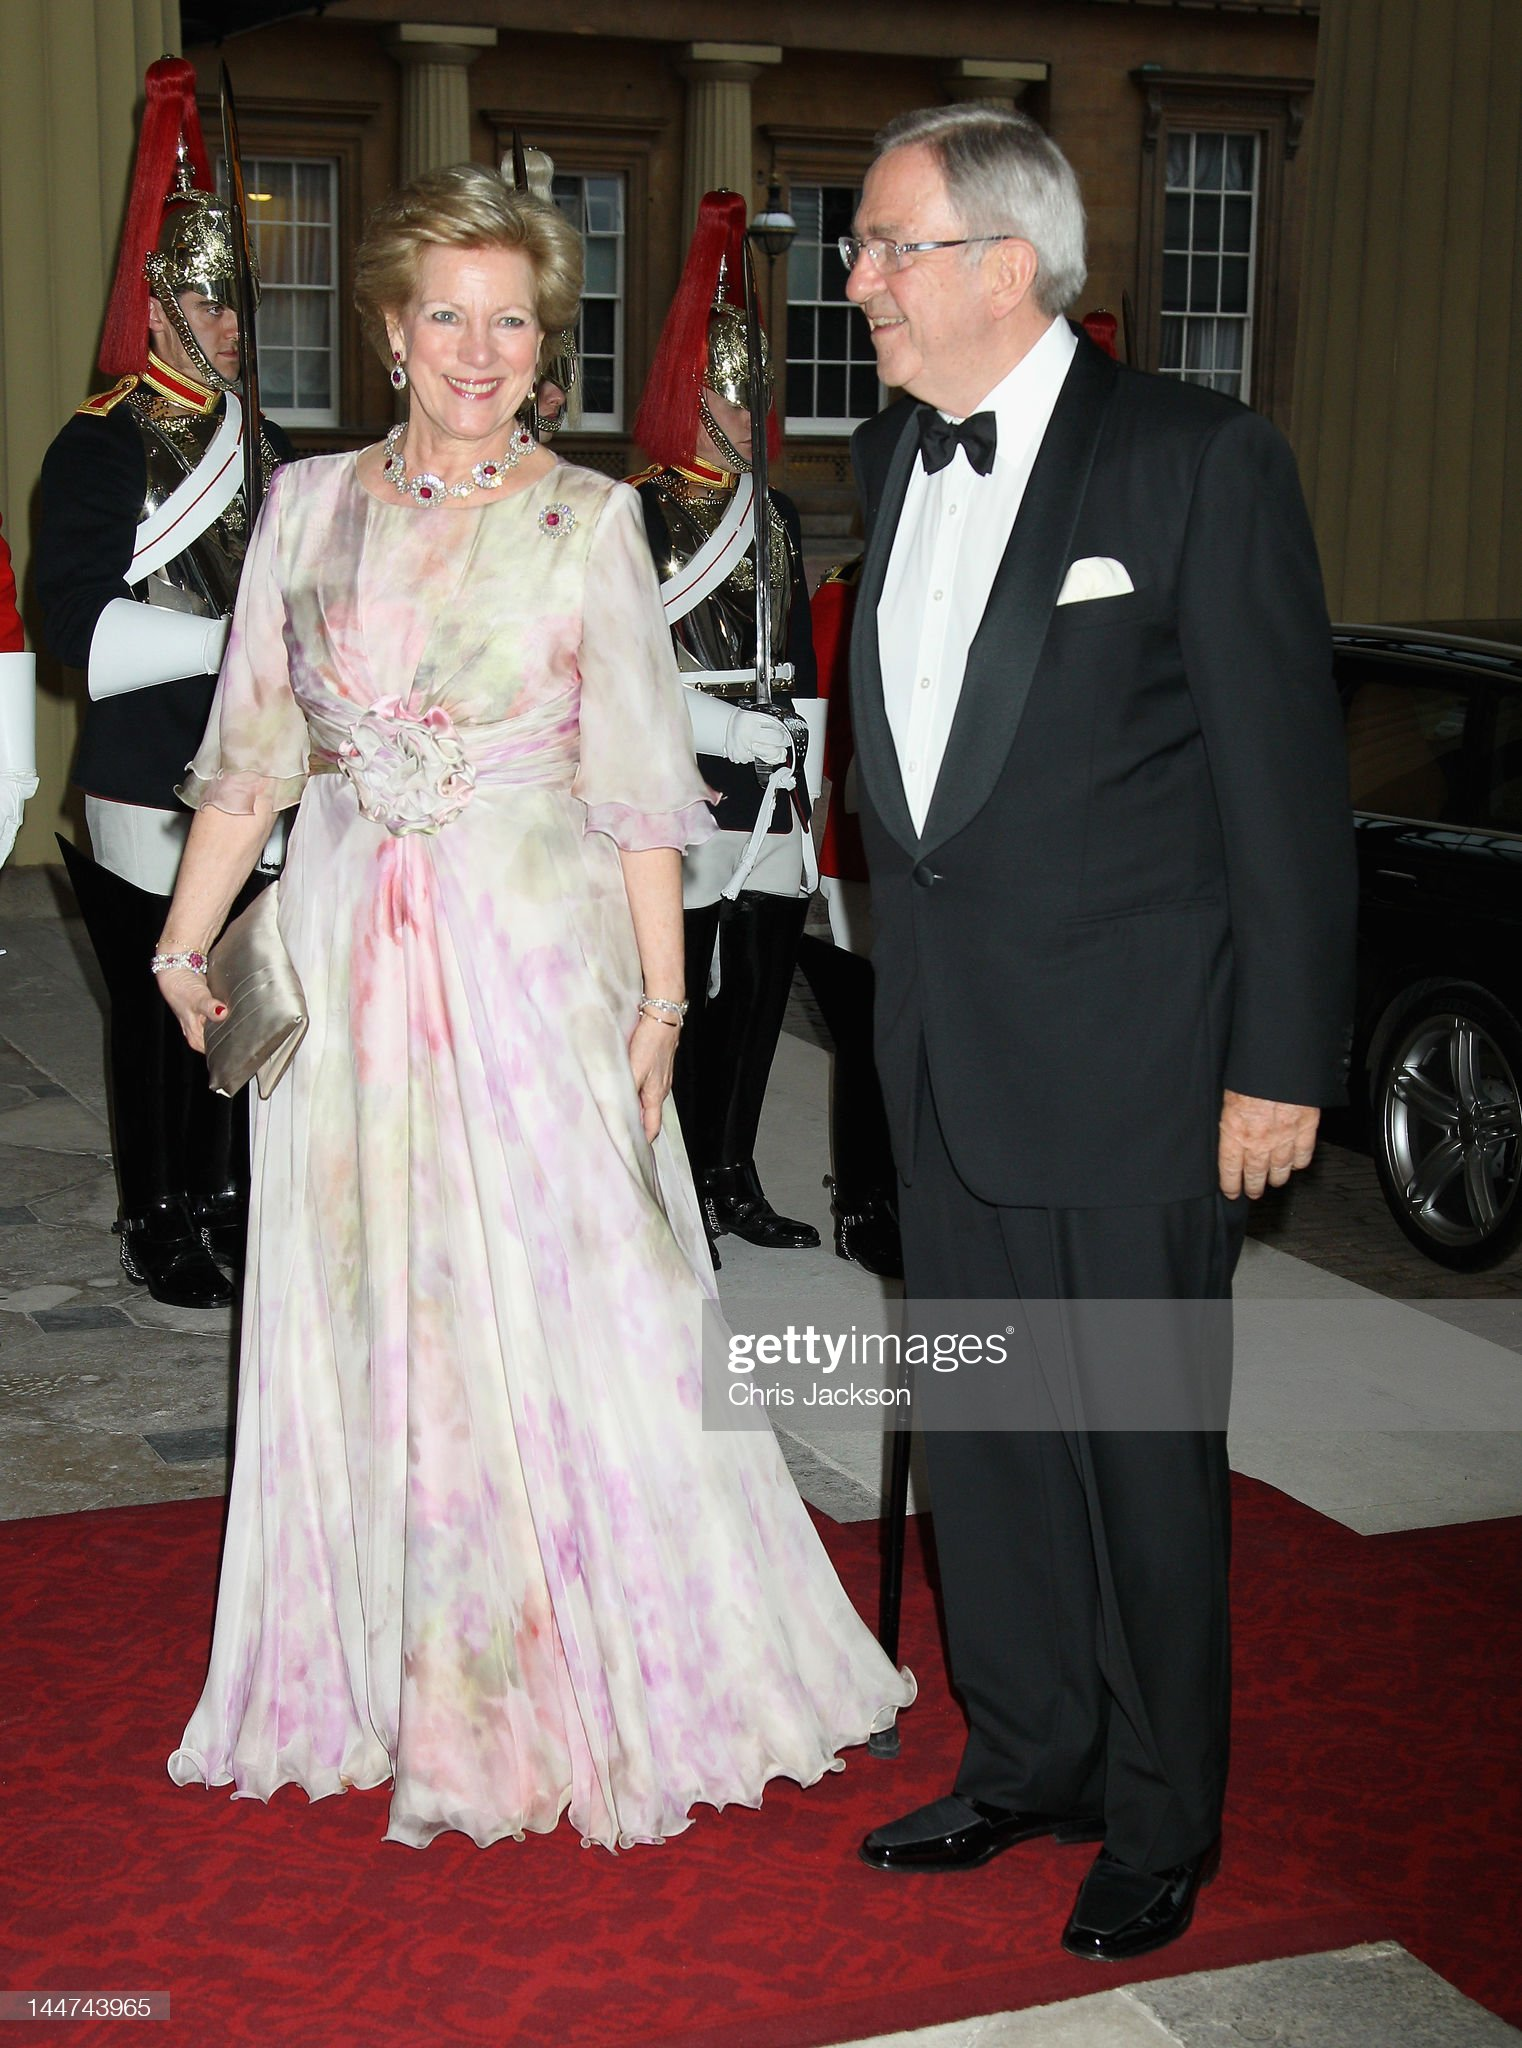 Foreign Sovereigns Attend Dinner to Commemorate the Diamond Jubilee : News Photo